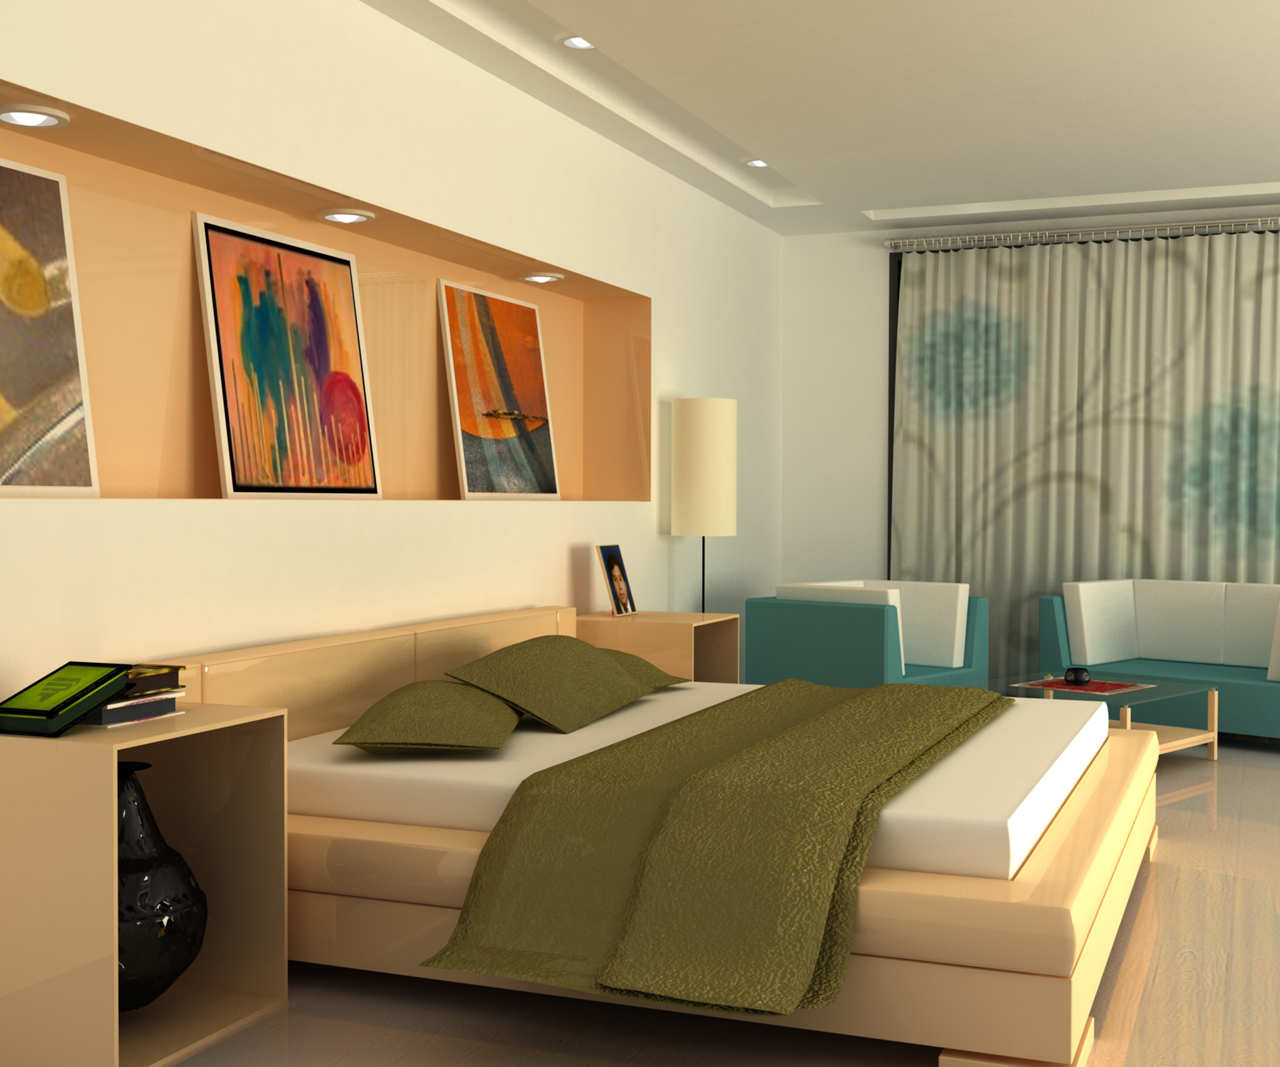 Online Bedroom Design bedroom decor items buy interior decoration items online bedroom room decor items online Interior Exterior Plan Try To Design Your 3d Bedroom Online